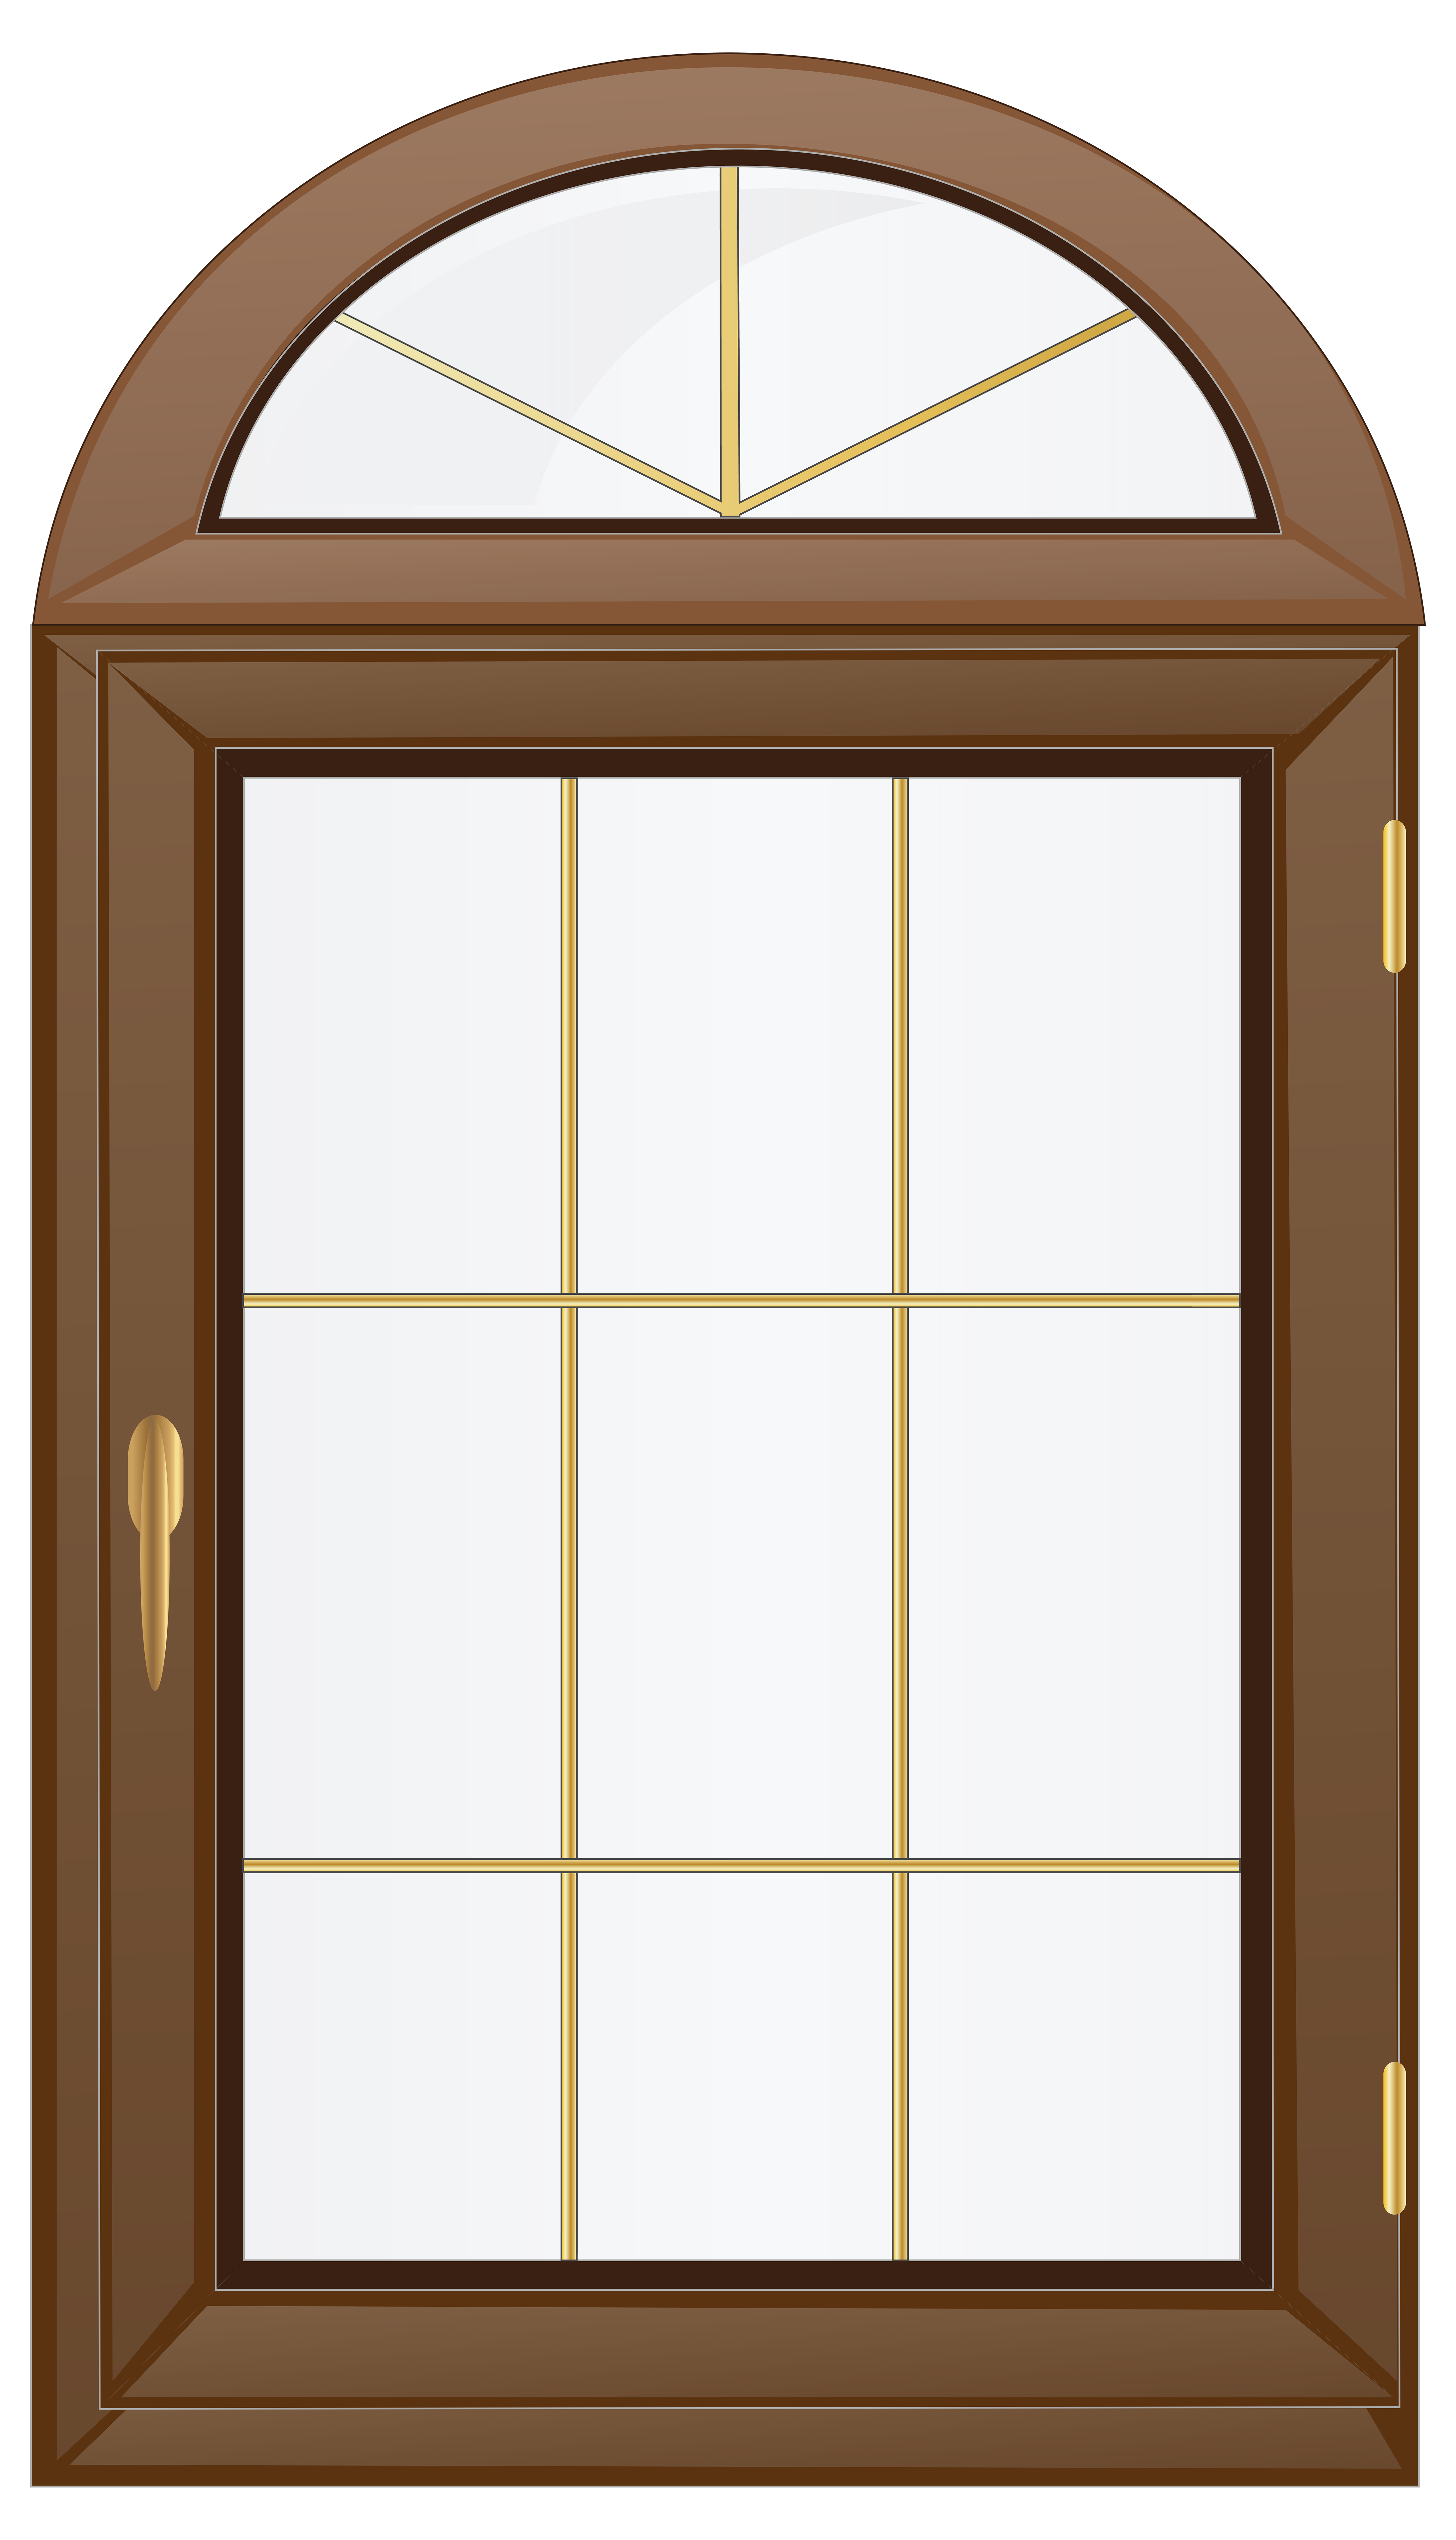 Windows Clipart PNG File PNG Images